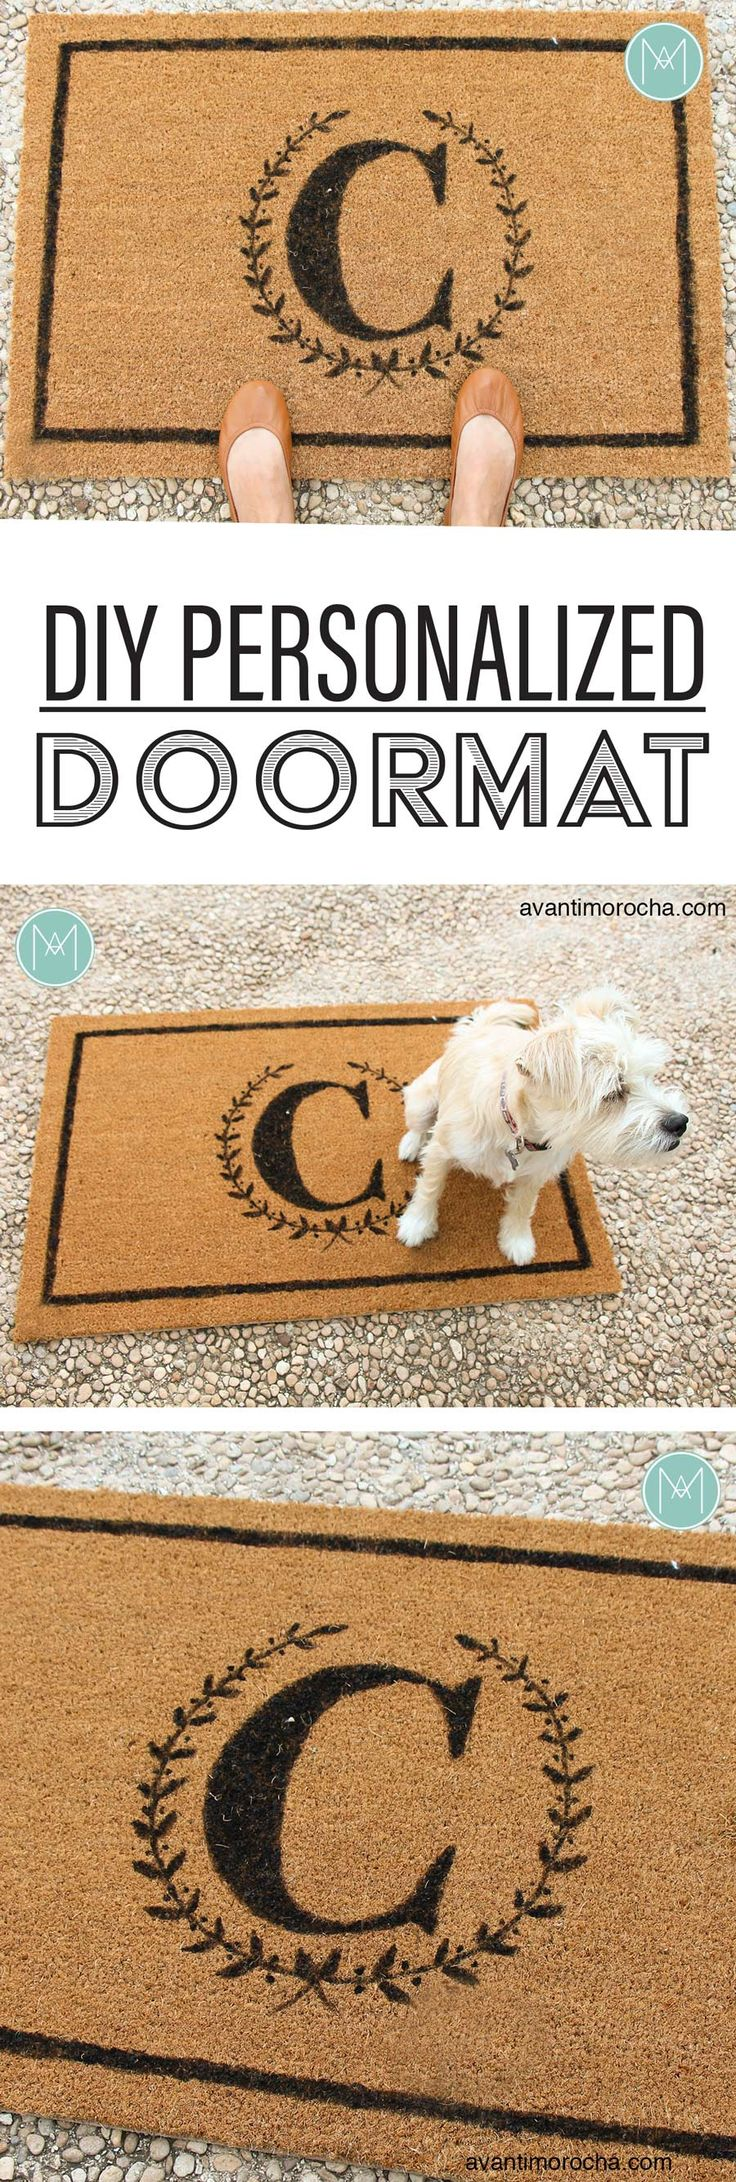 Diy Personalized Doormat Tapete Personalizado